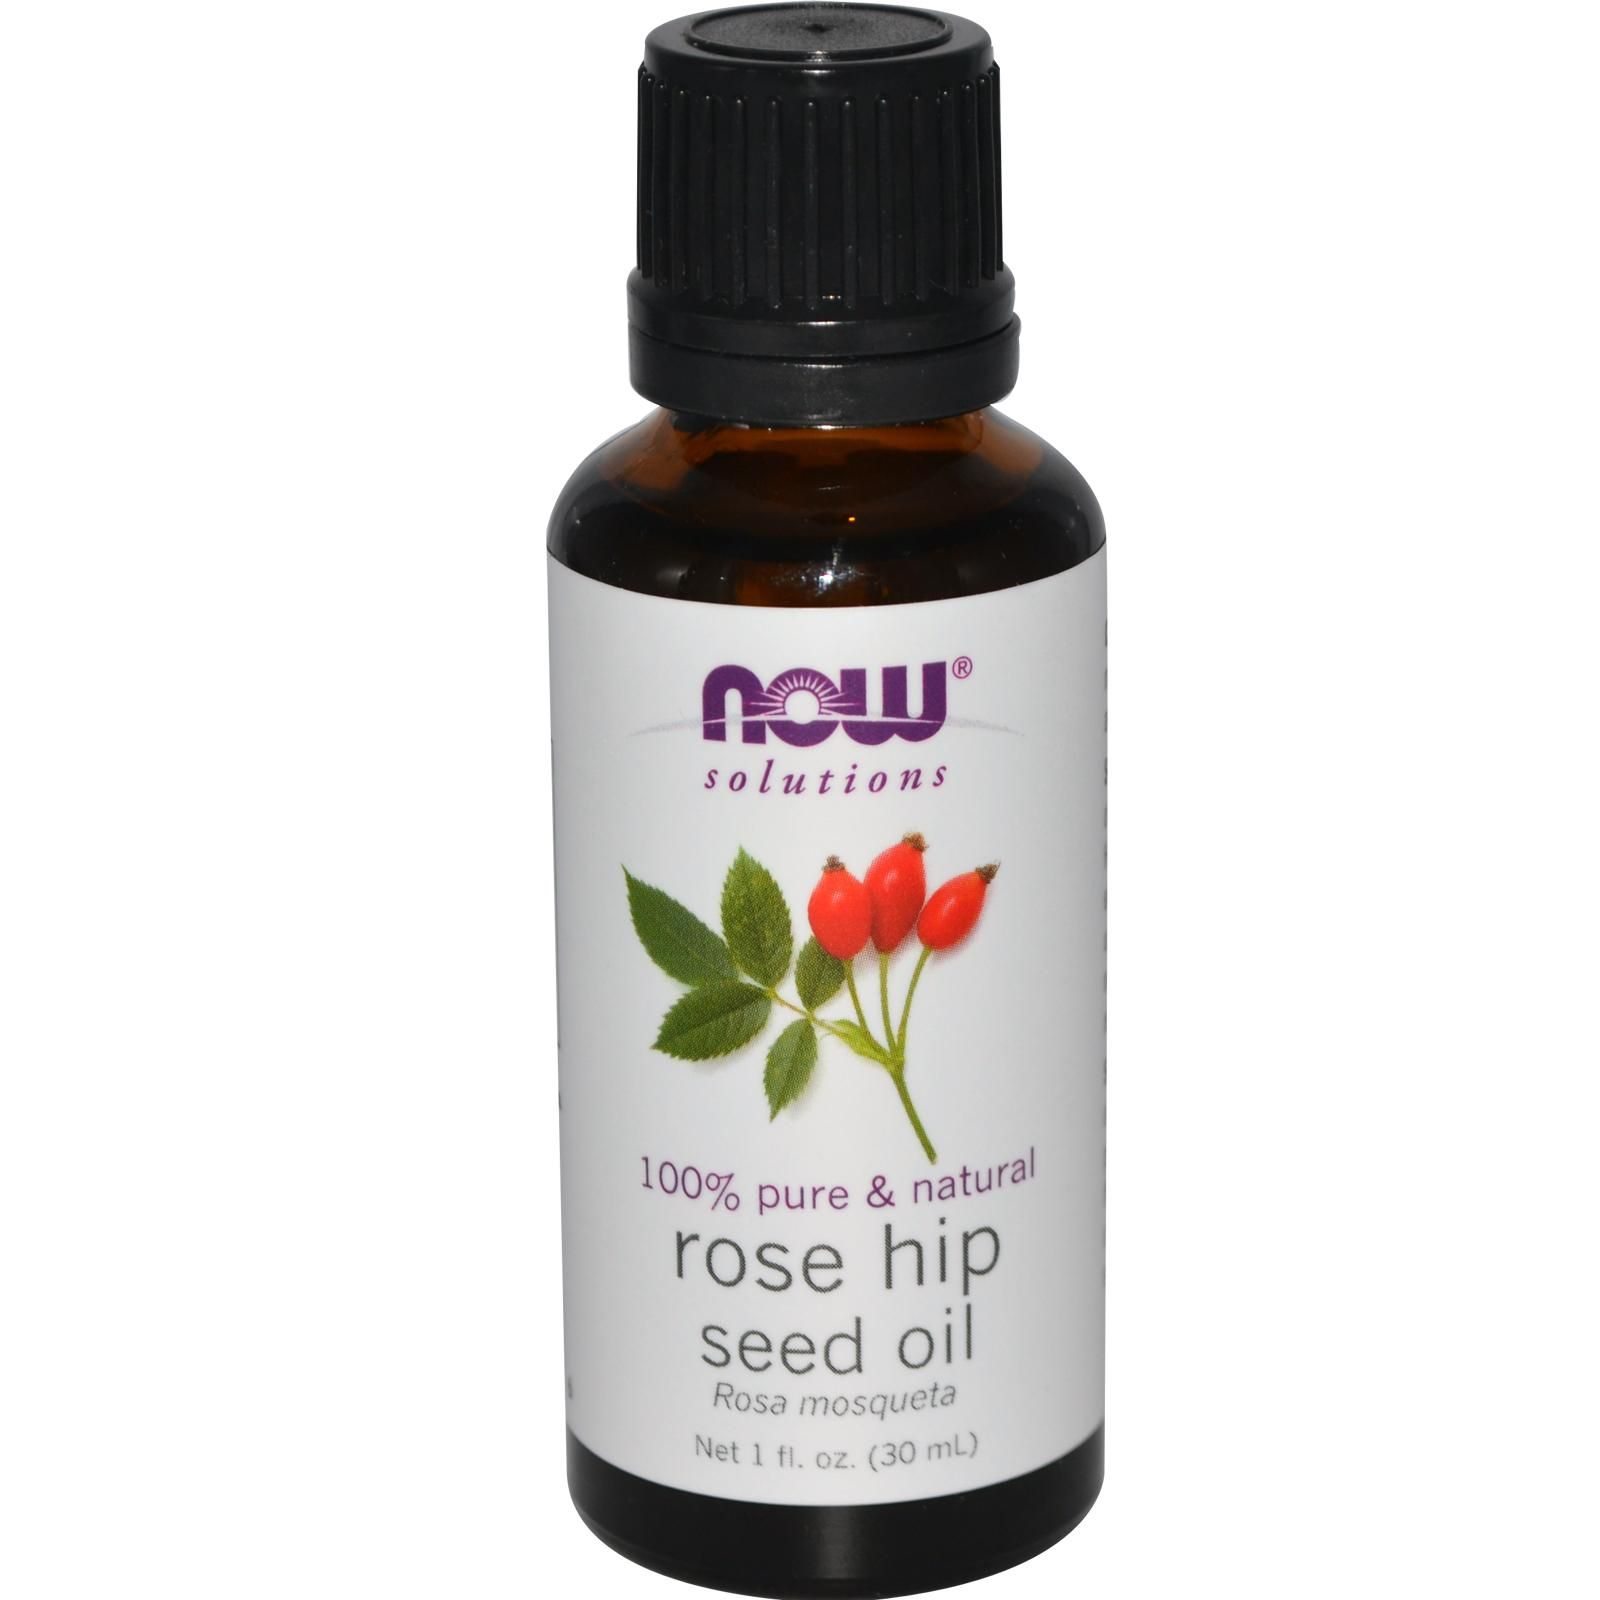 Rosehip Seed Oil Contains Vitamin A Which Helps To Delay The Effects Of Skin Aging Assists With Cell Regeneration Promotes Rosehip Seed Oil Oils Beauty Oil